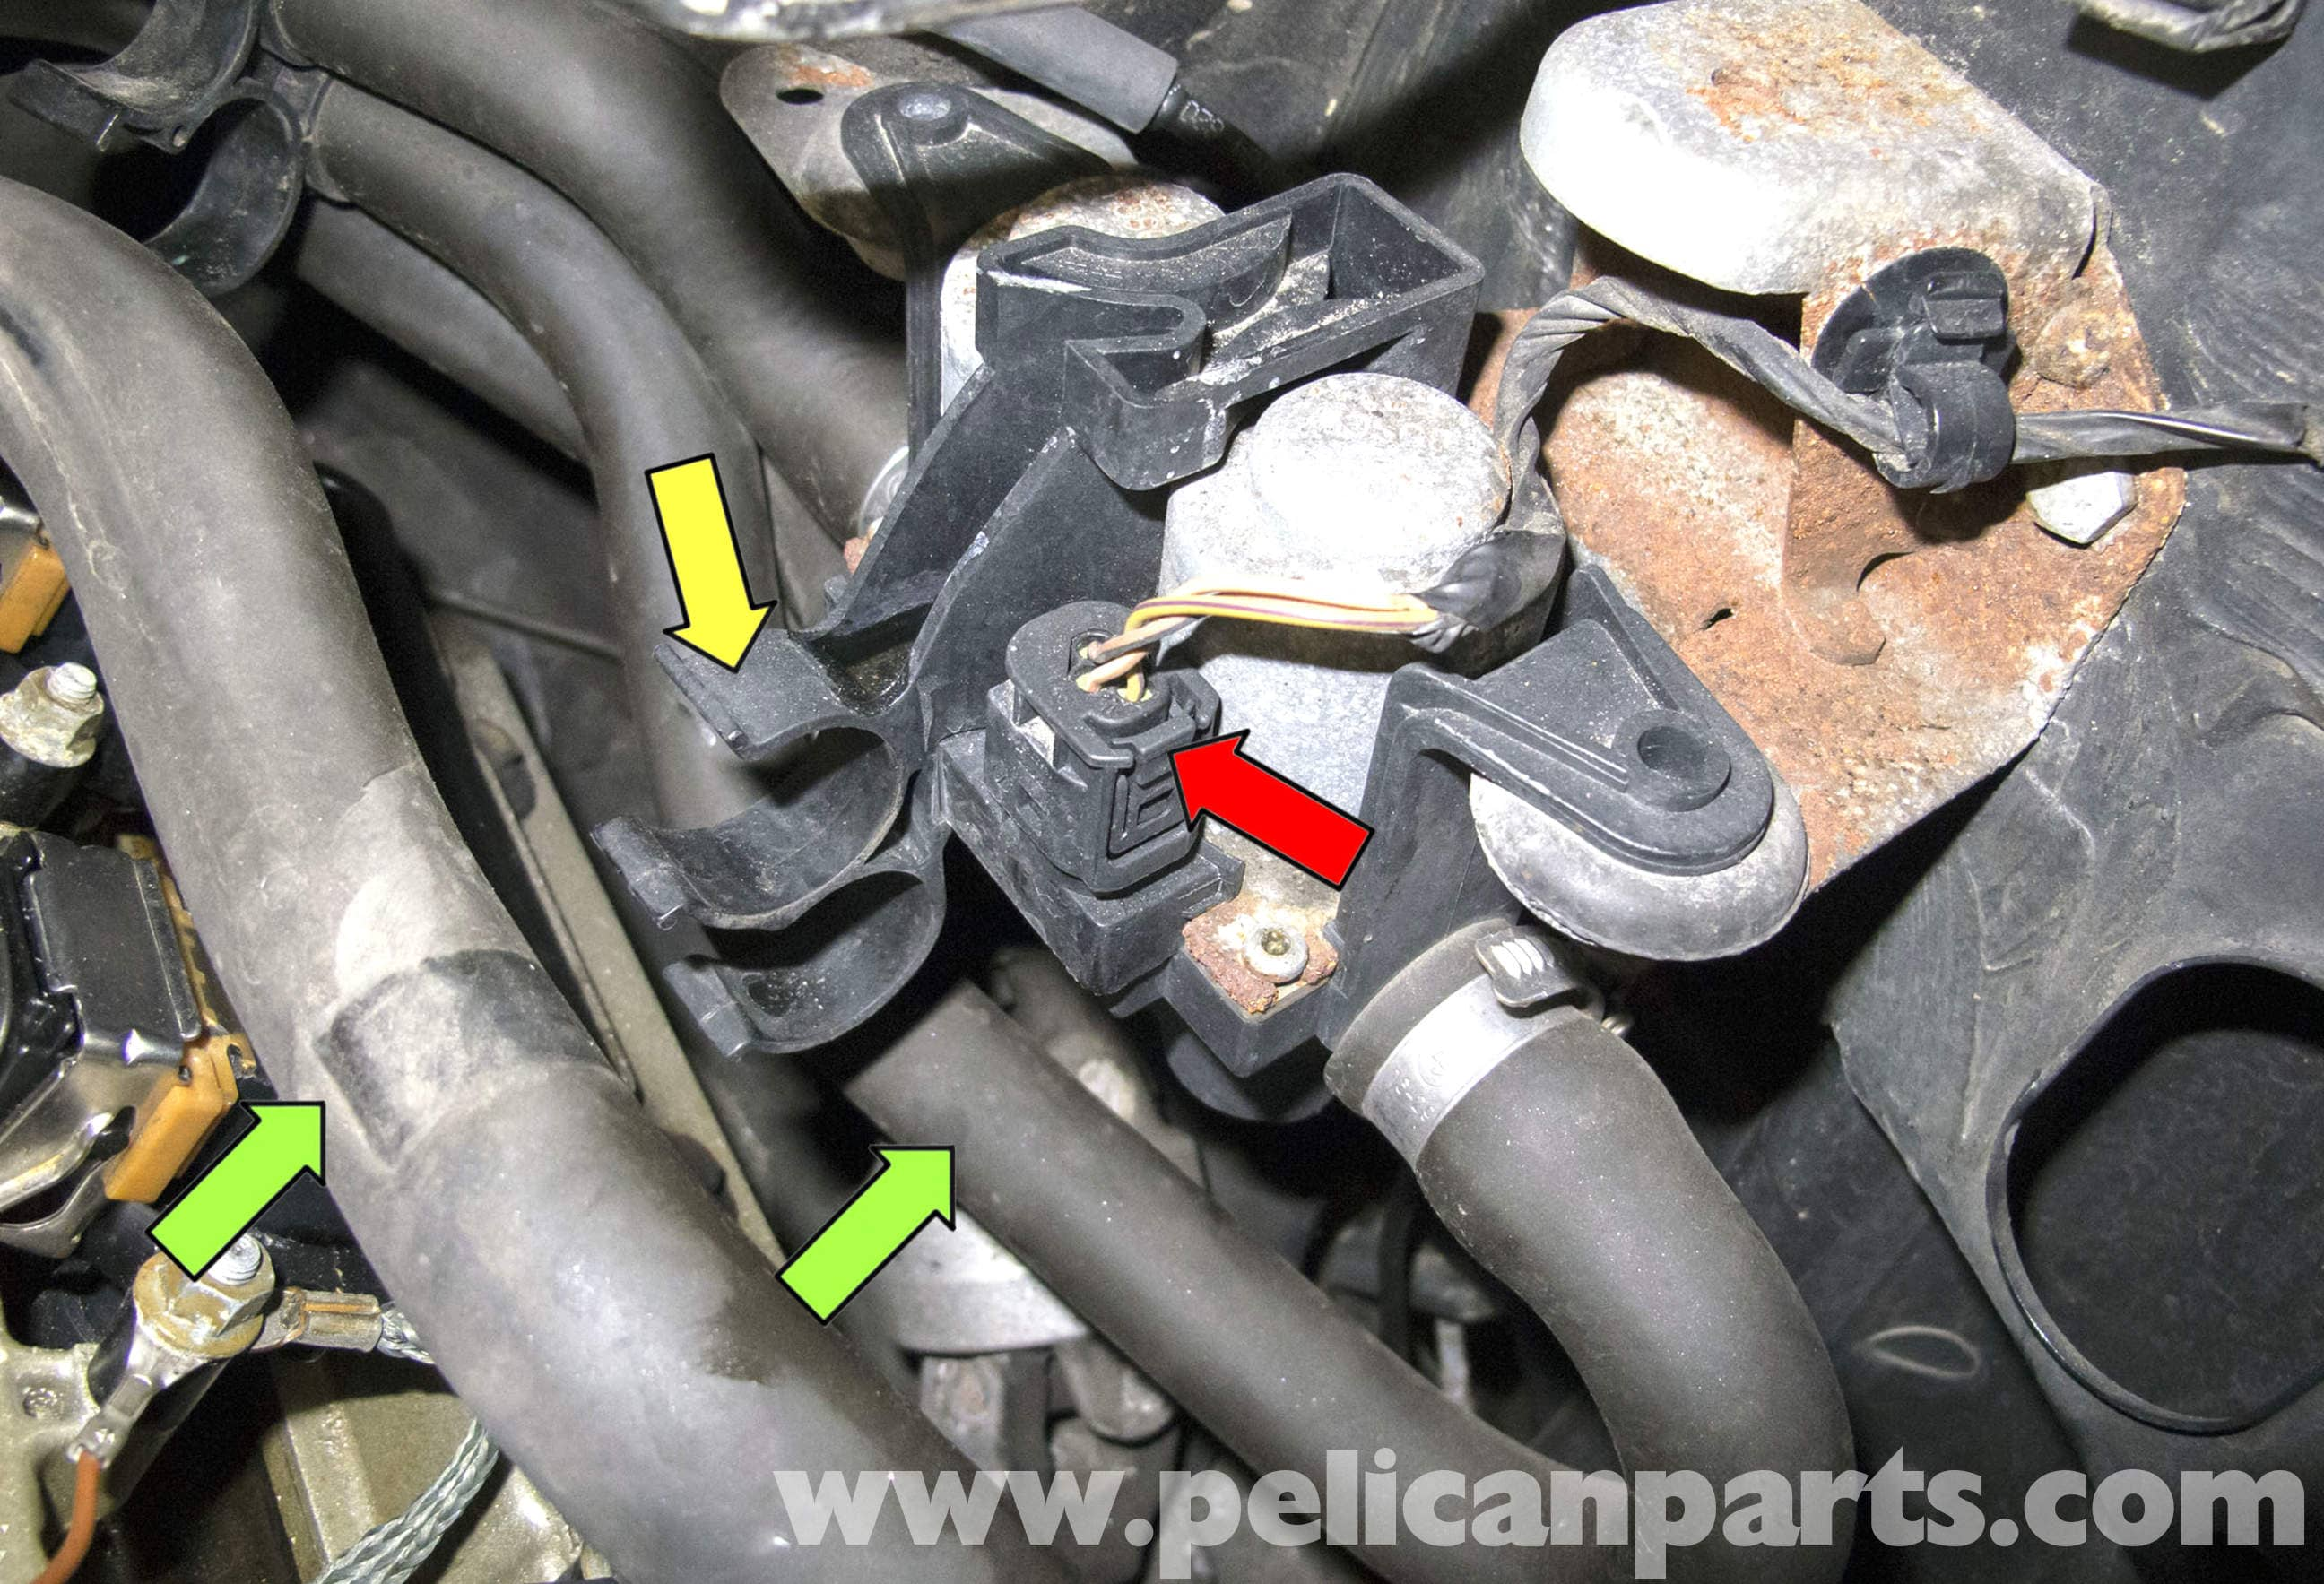 2007 Cadillac Cts Fuse Box Bmw X5 Heater Valve Testing And Replacement E53 2000